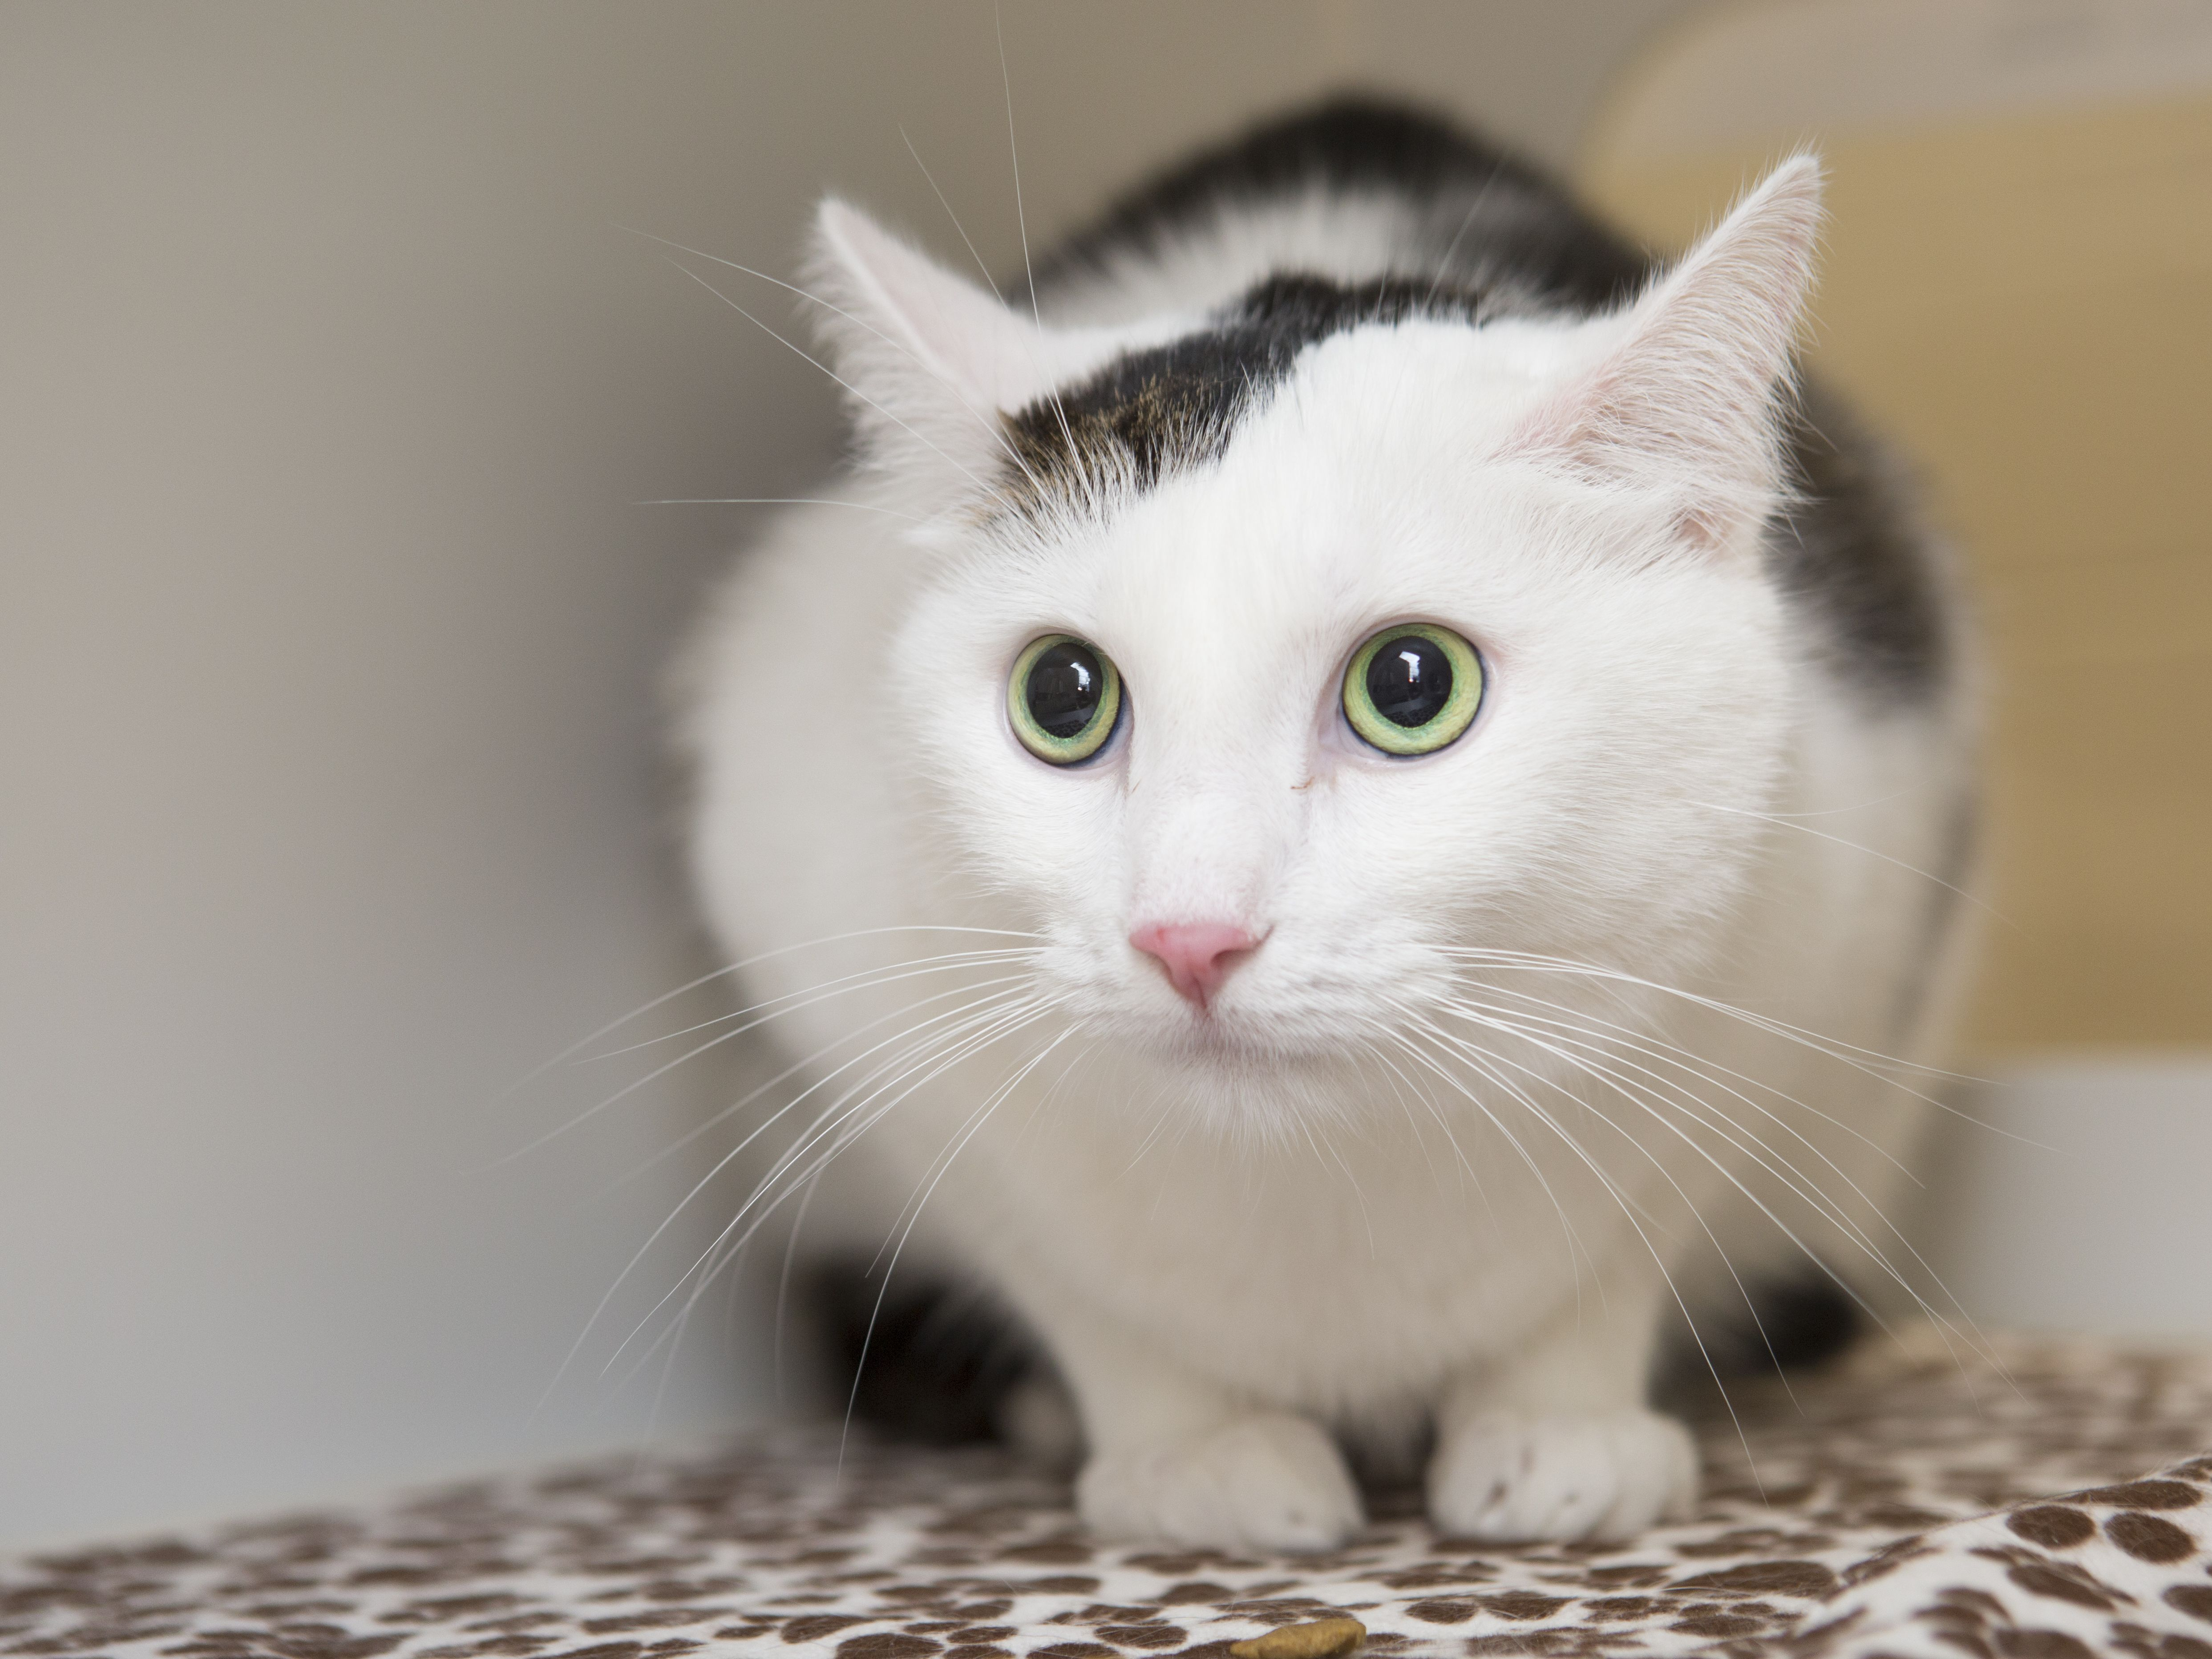 Kuma is a beautiful 4 year old cat available for adoption at the